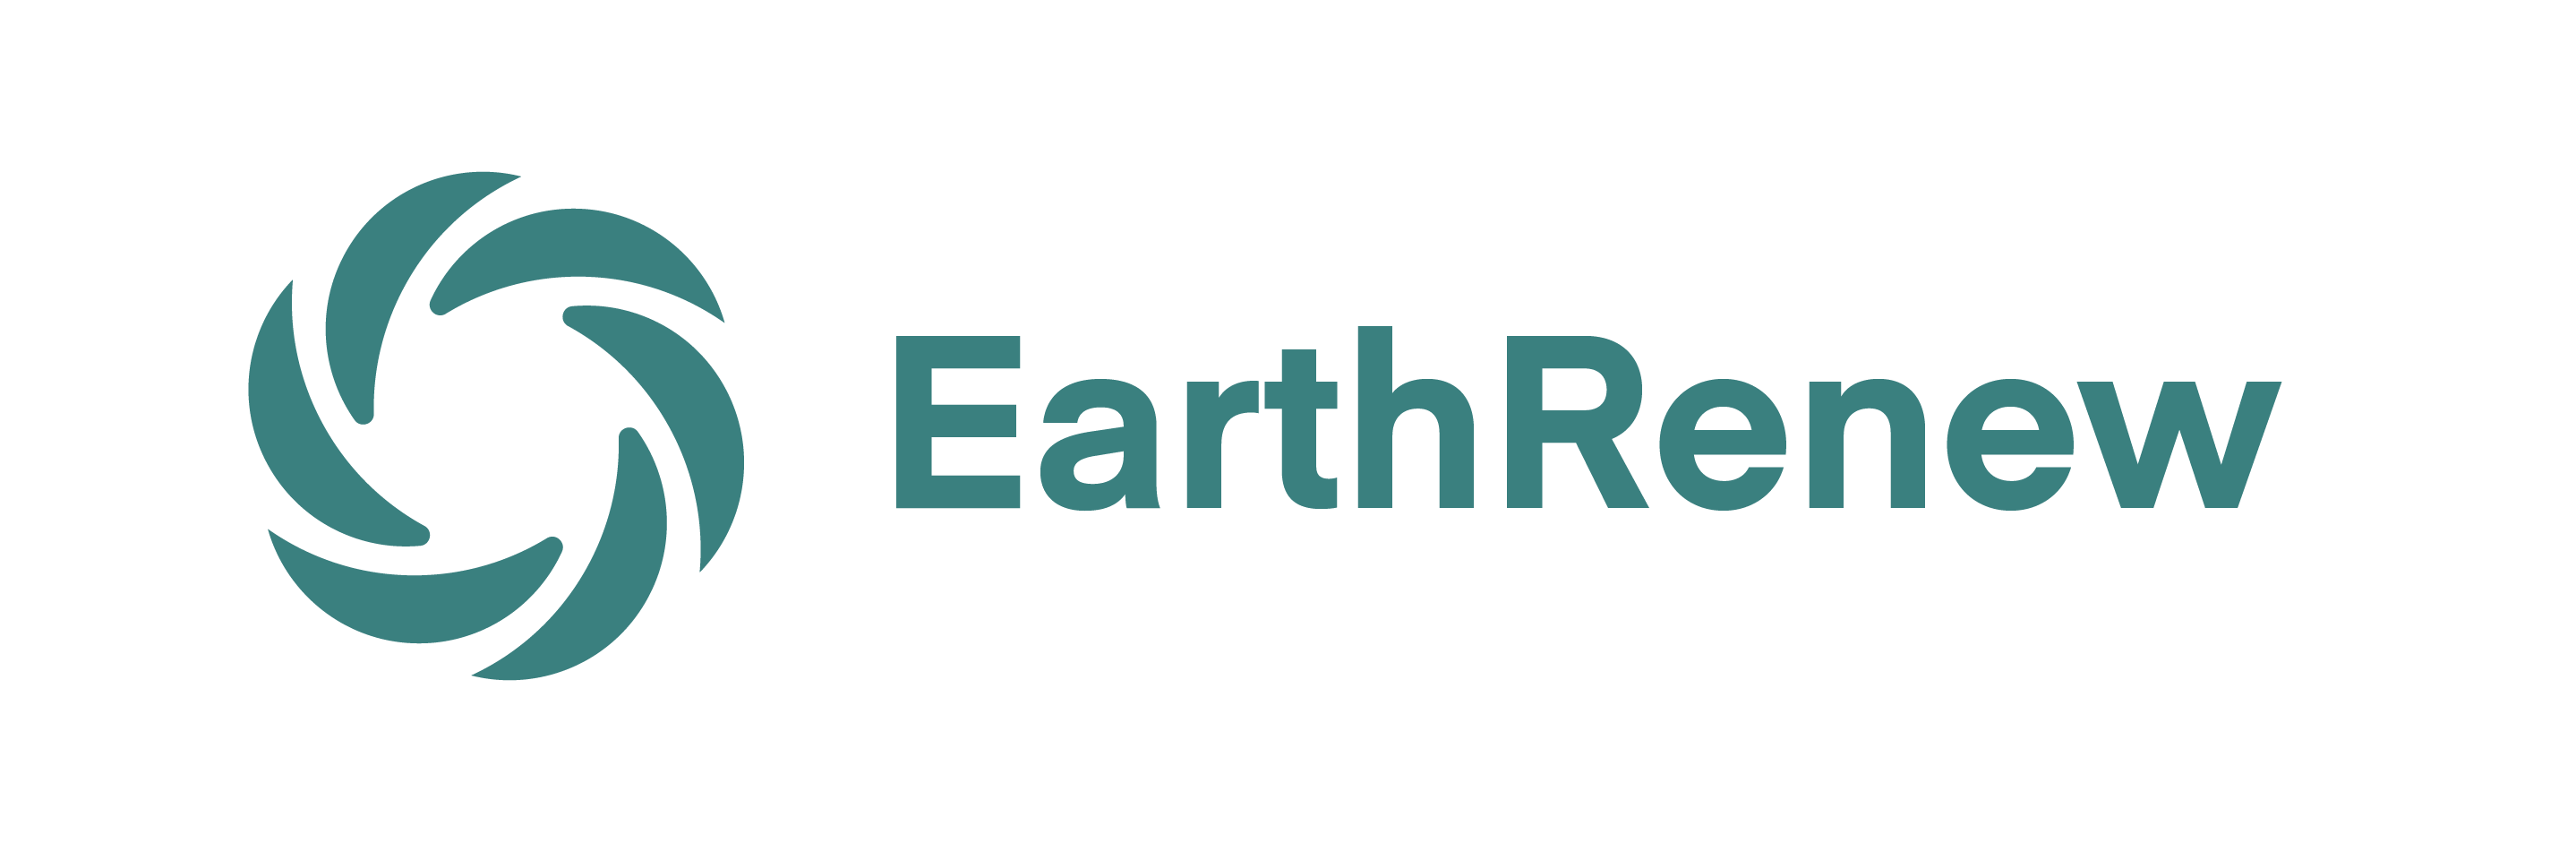 REPEAT - EarthRenew Sells 1,500 MWh of Electricity Generated by the Strathmore Facility in 2020